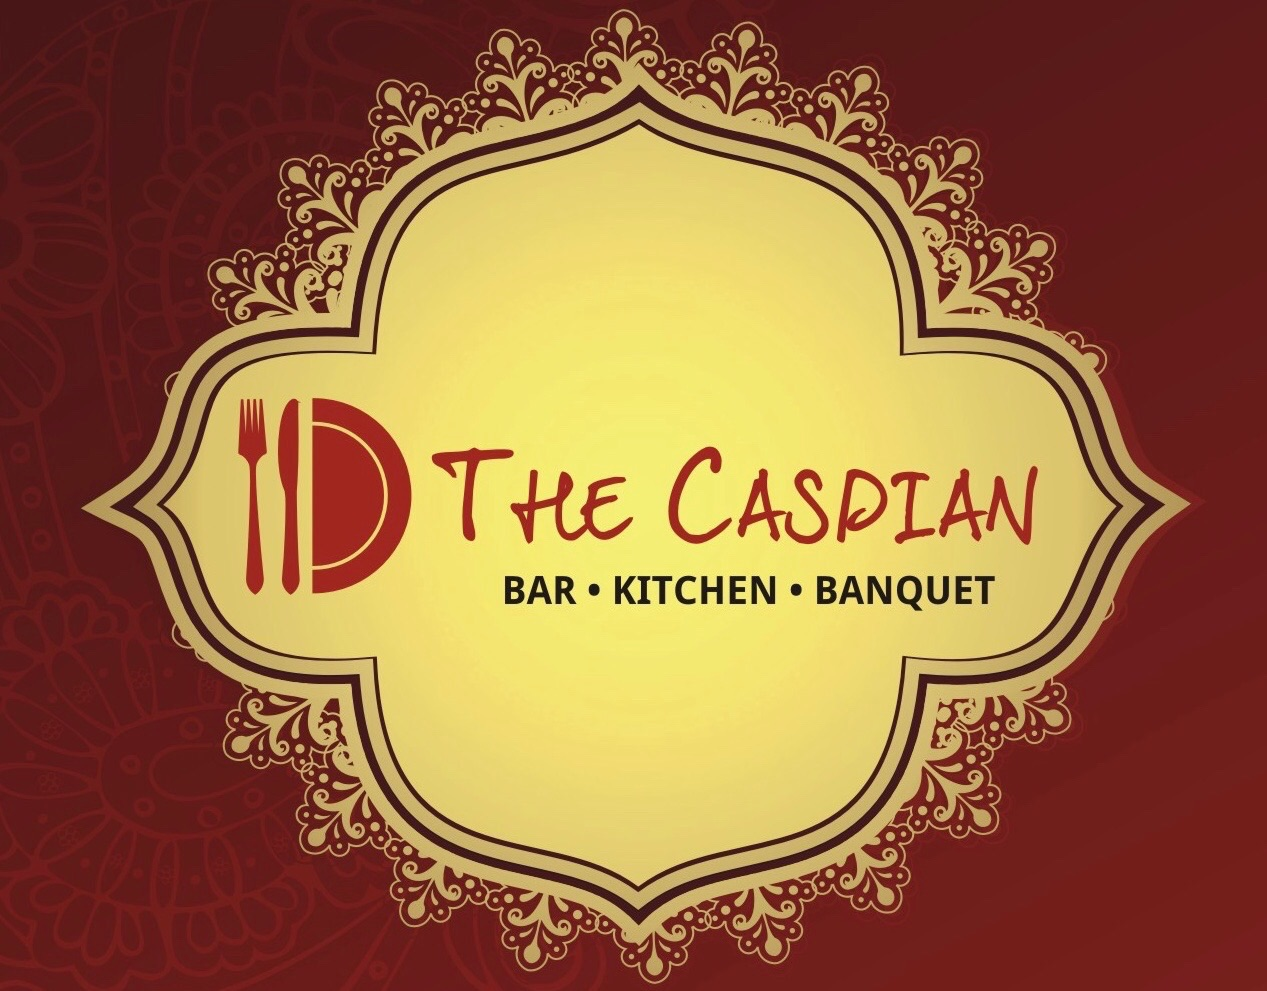 The Caspian Bar Kitchen Banquet - logo